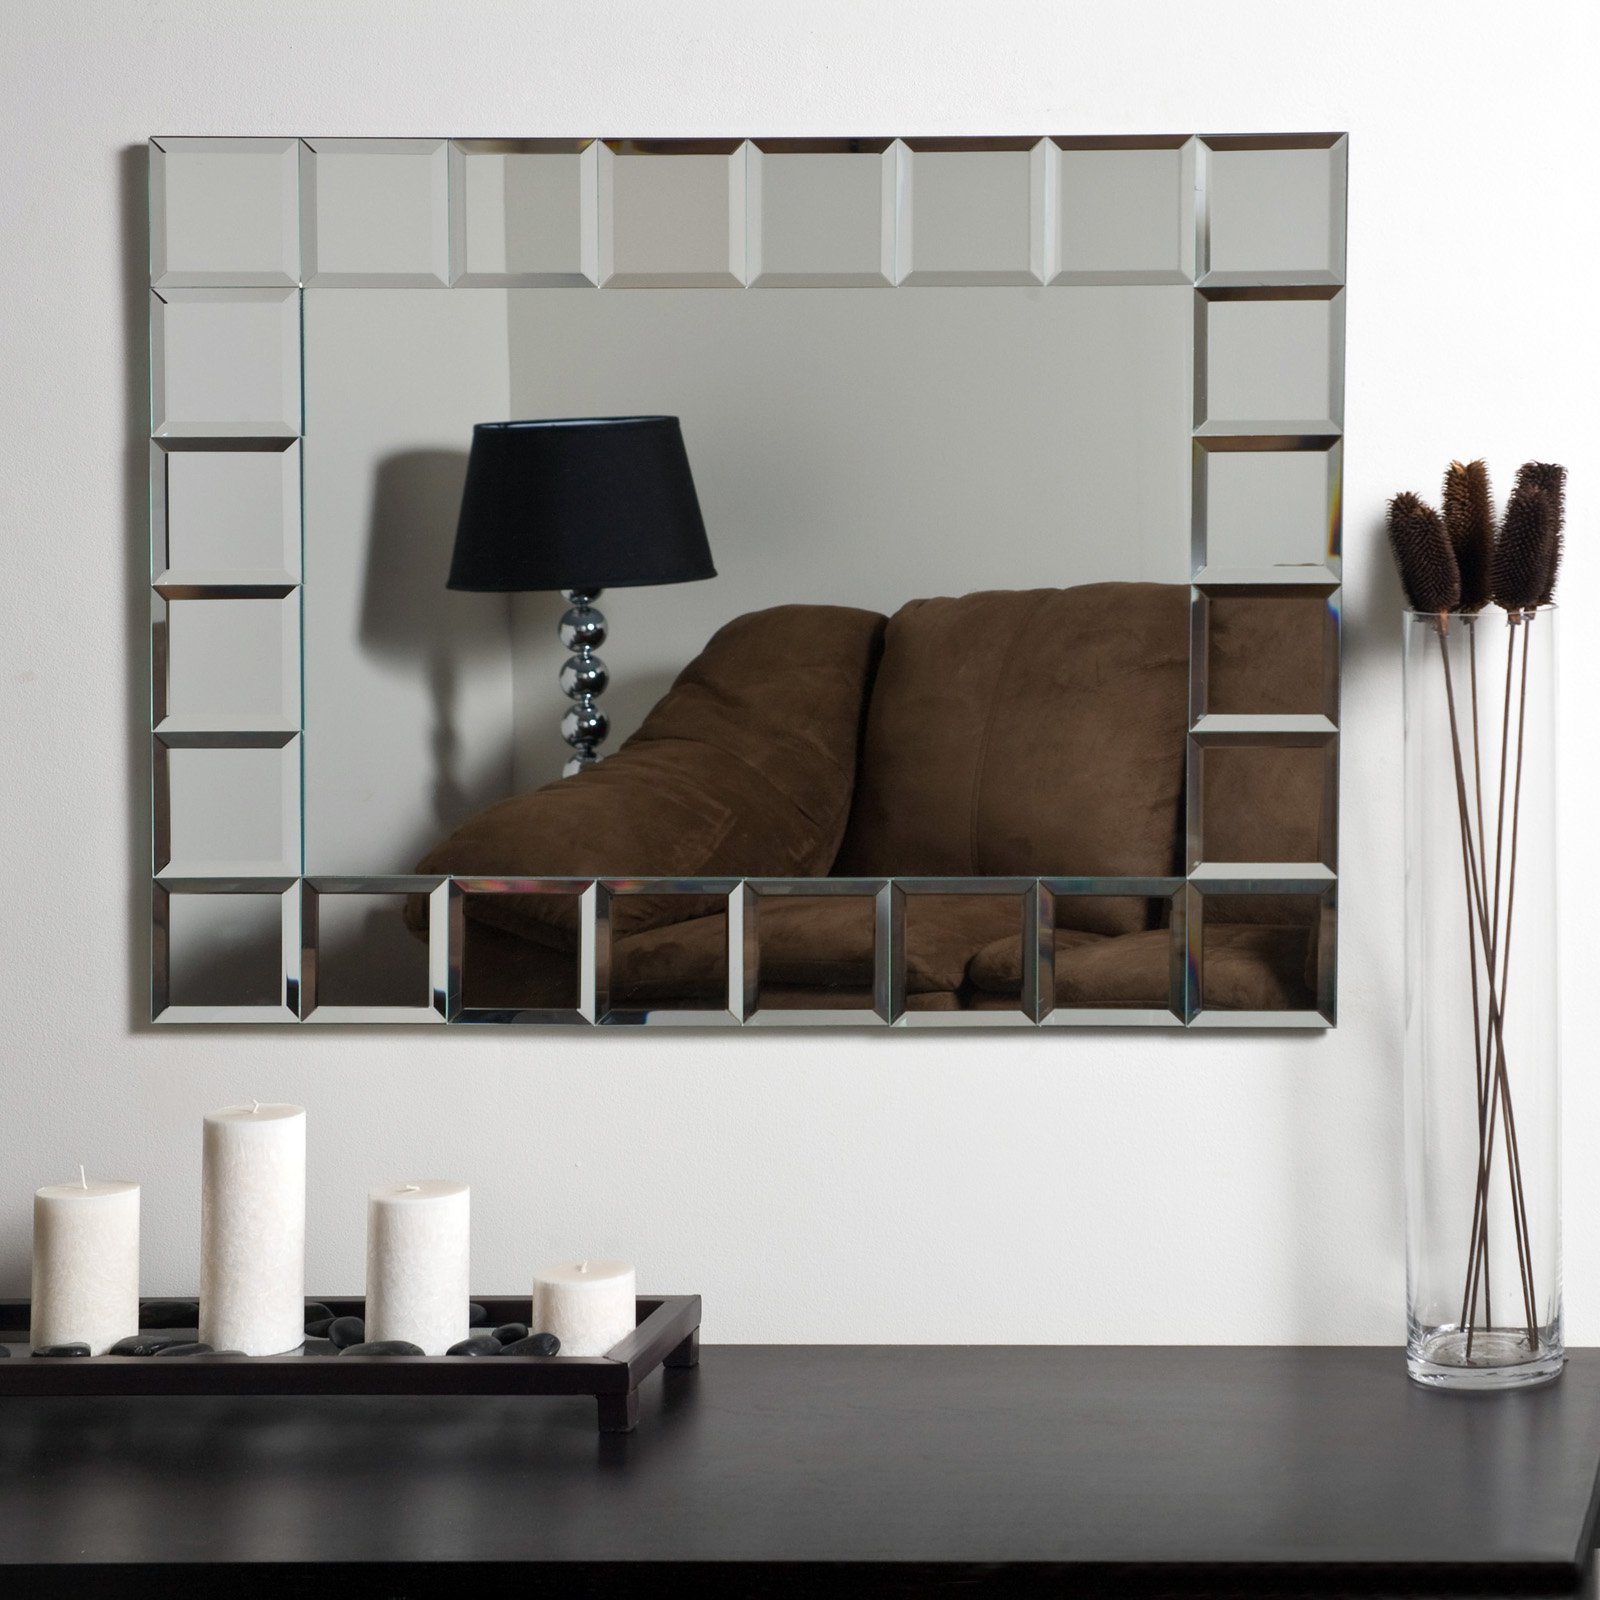 Décor Wonderland Montreal Modern Frameless Bathroom Mirror 31.5W x 23.6H in. by Decor Wonderland of US